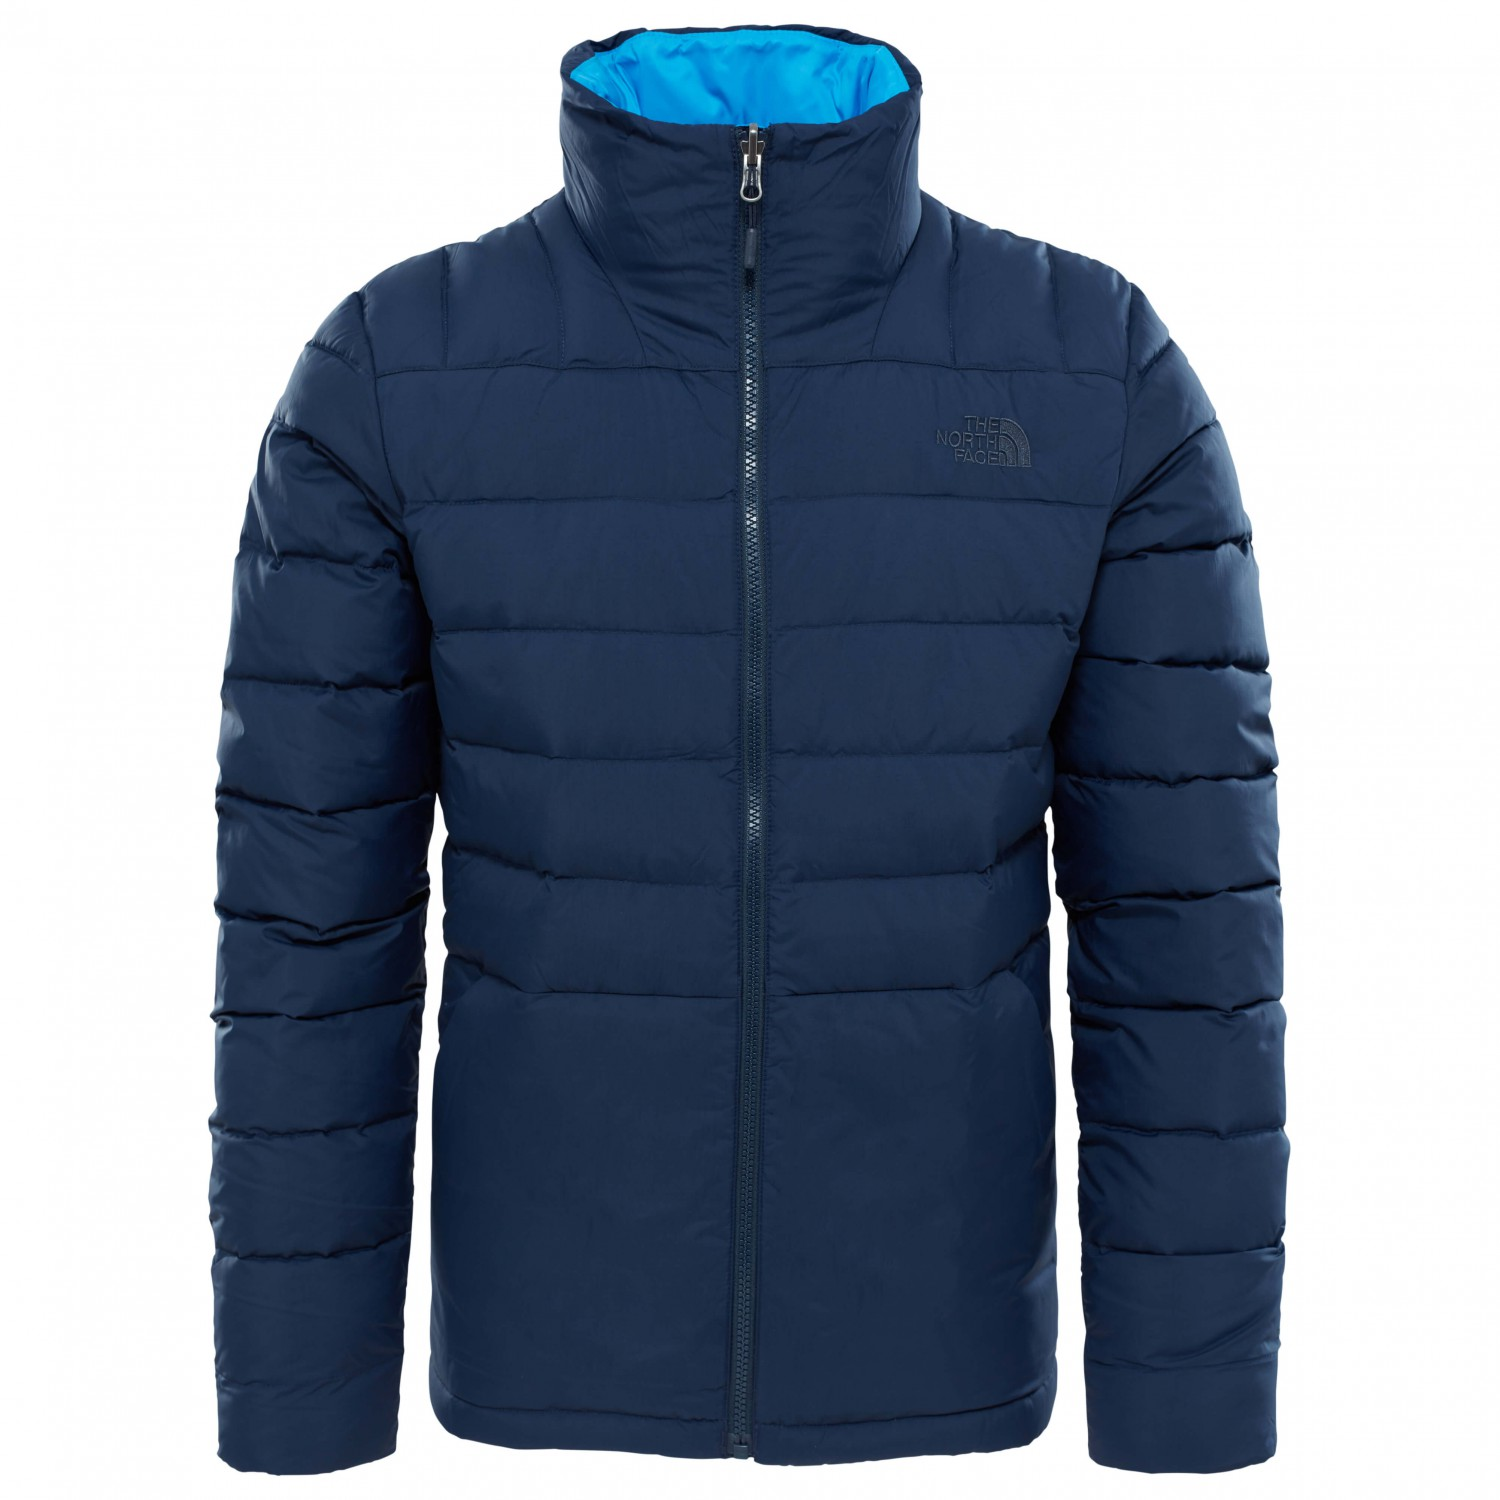 The North Face Peakfrontier Jacket